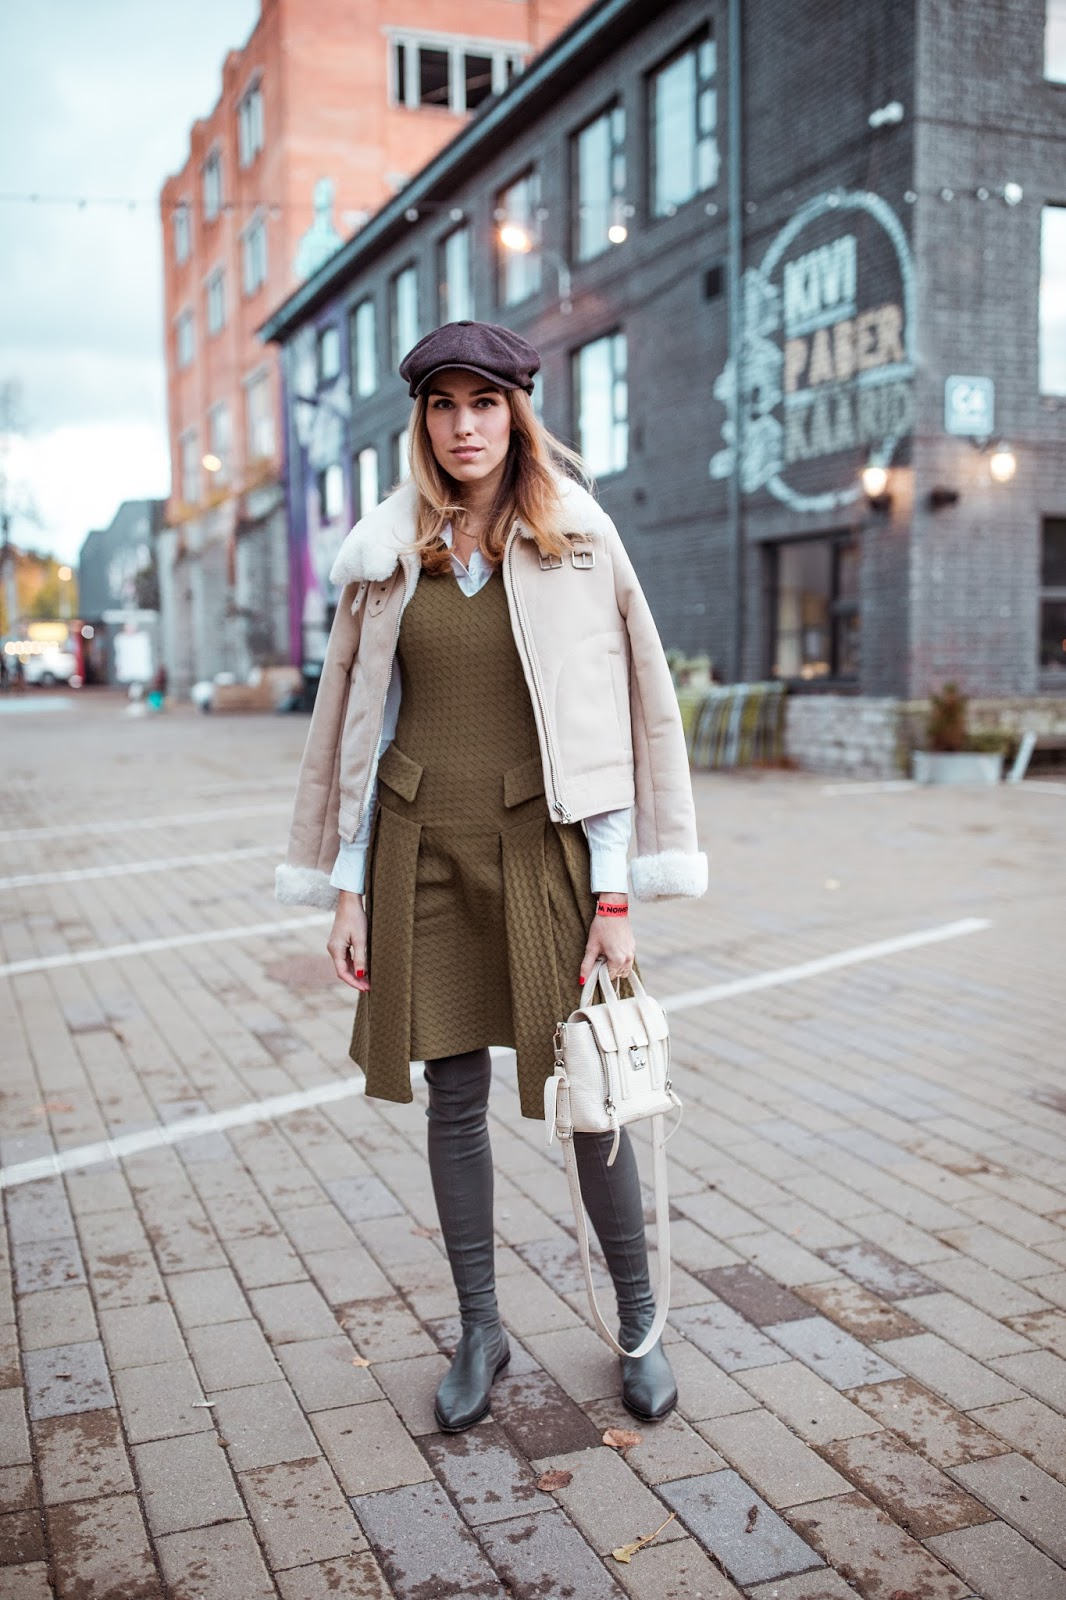 green dress over knee boots hat jacket outfit